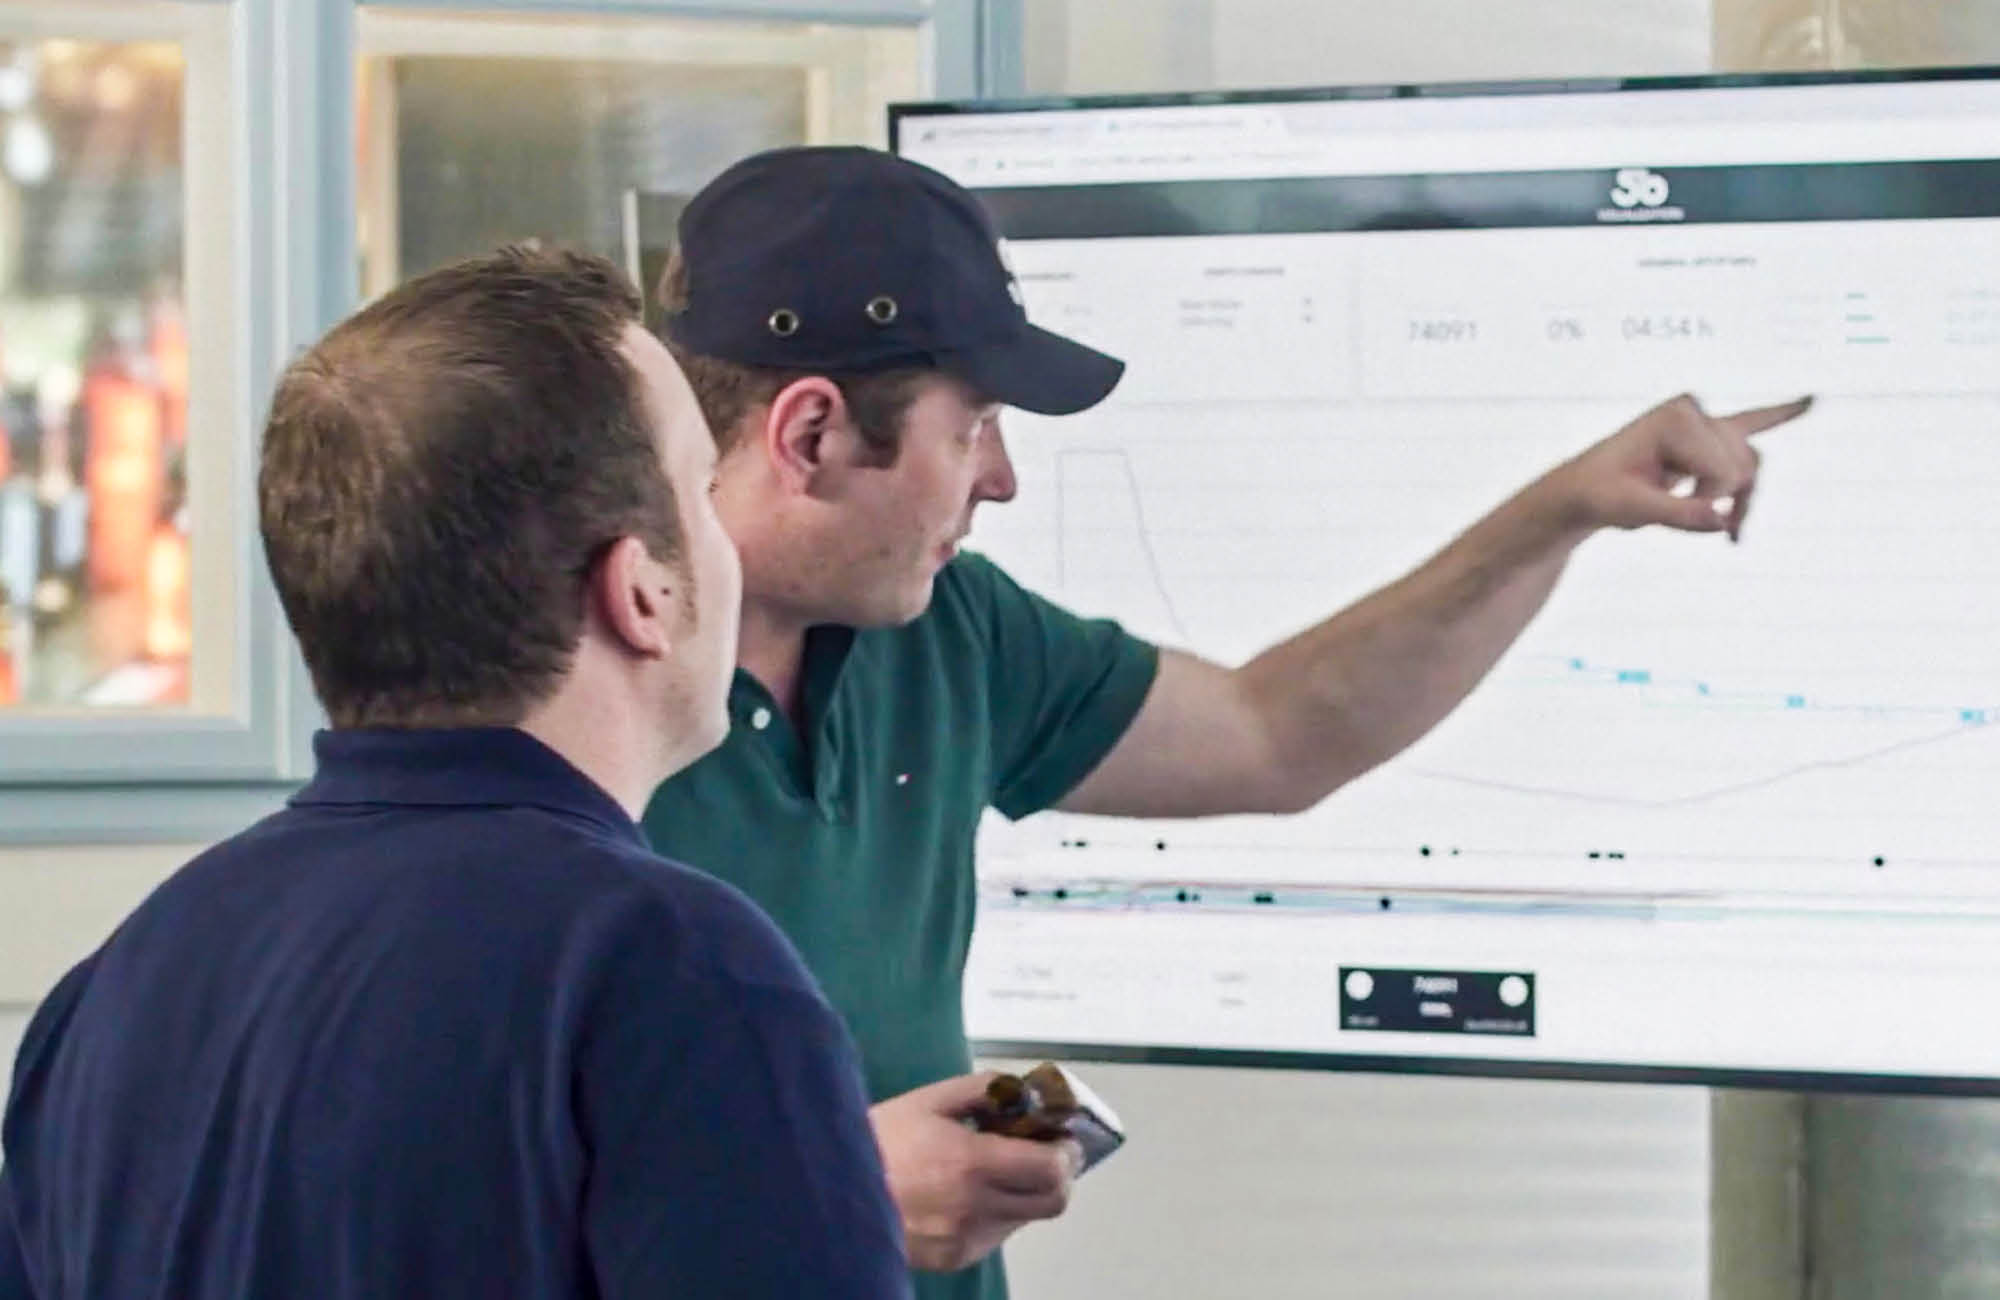 Two persons are discussing the production process in front of a screen